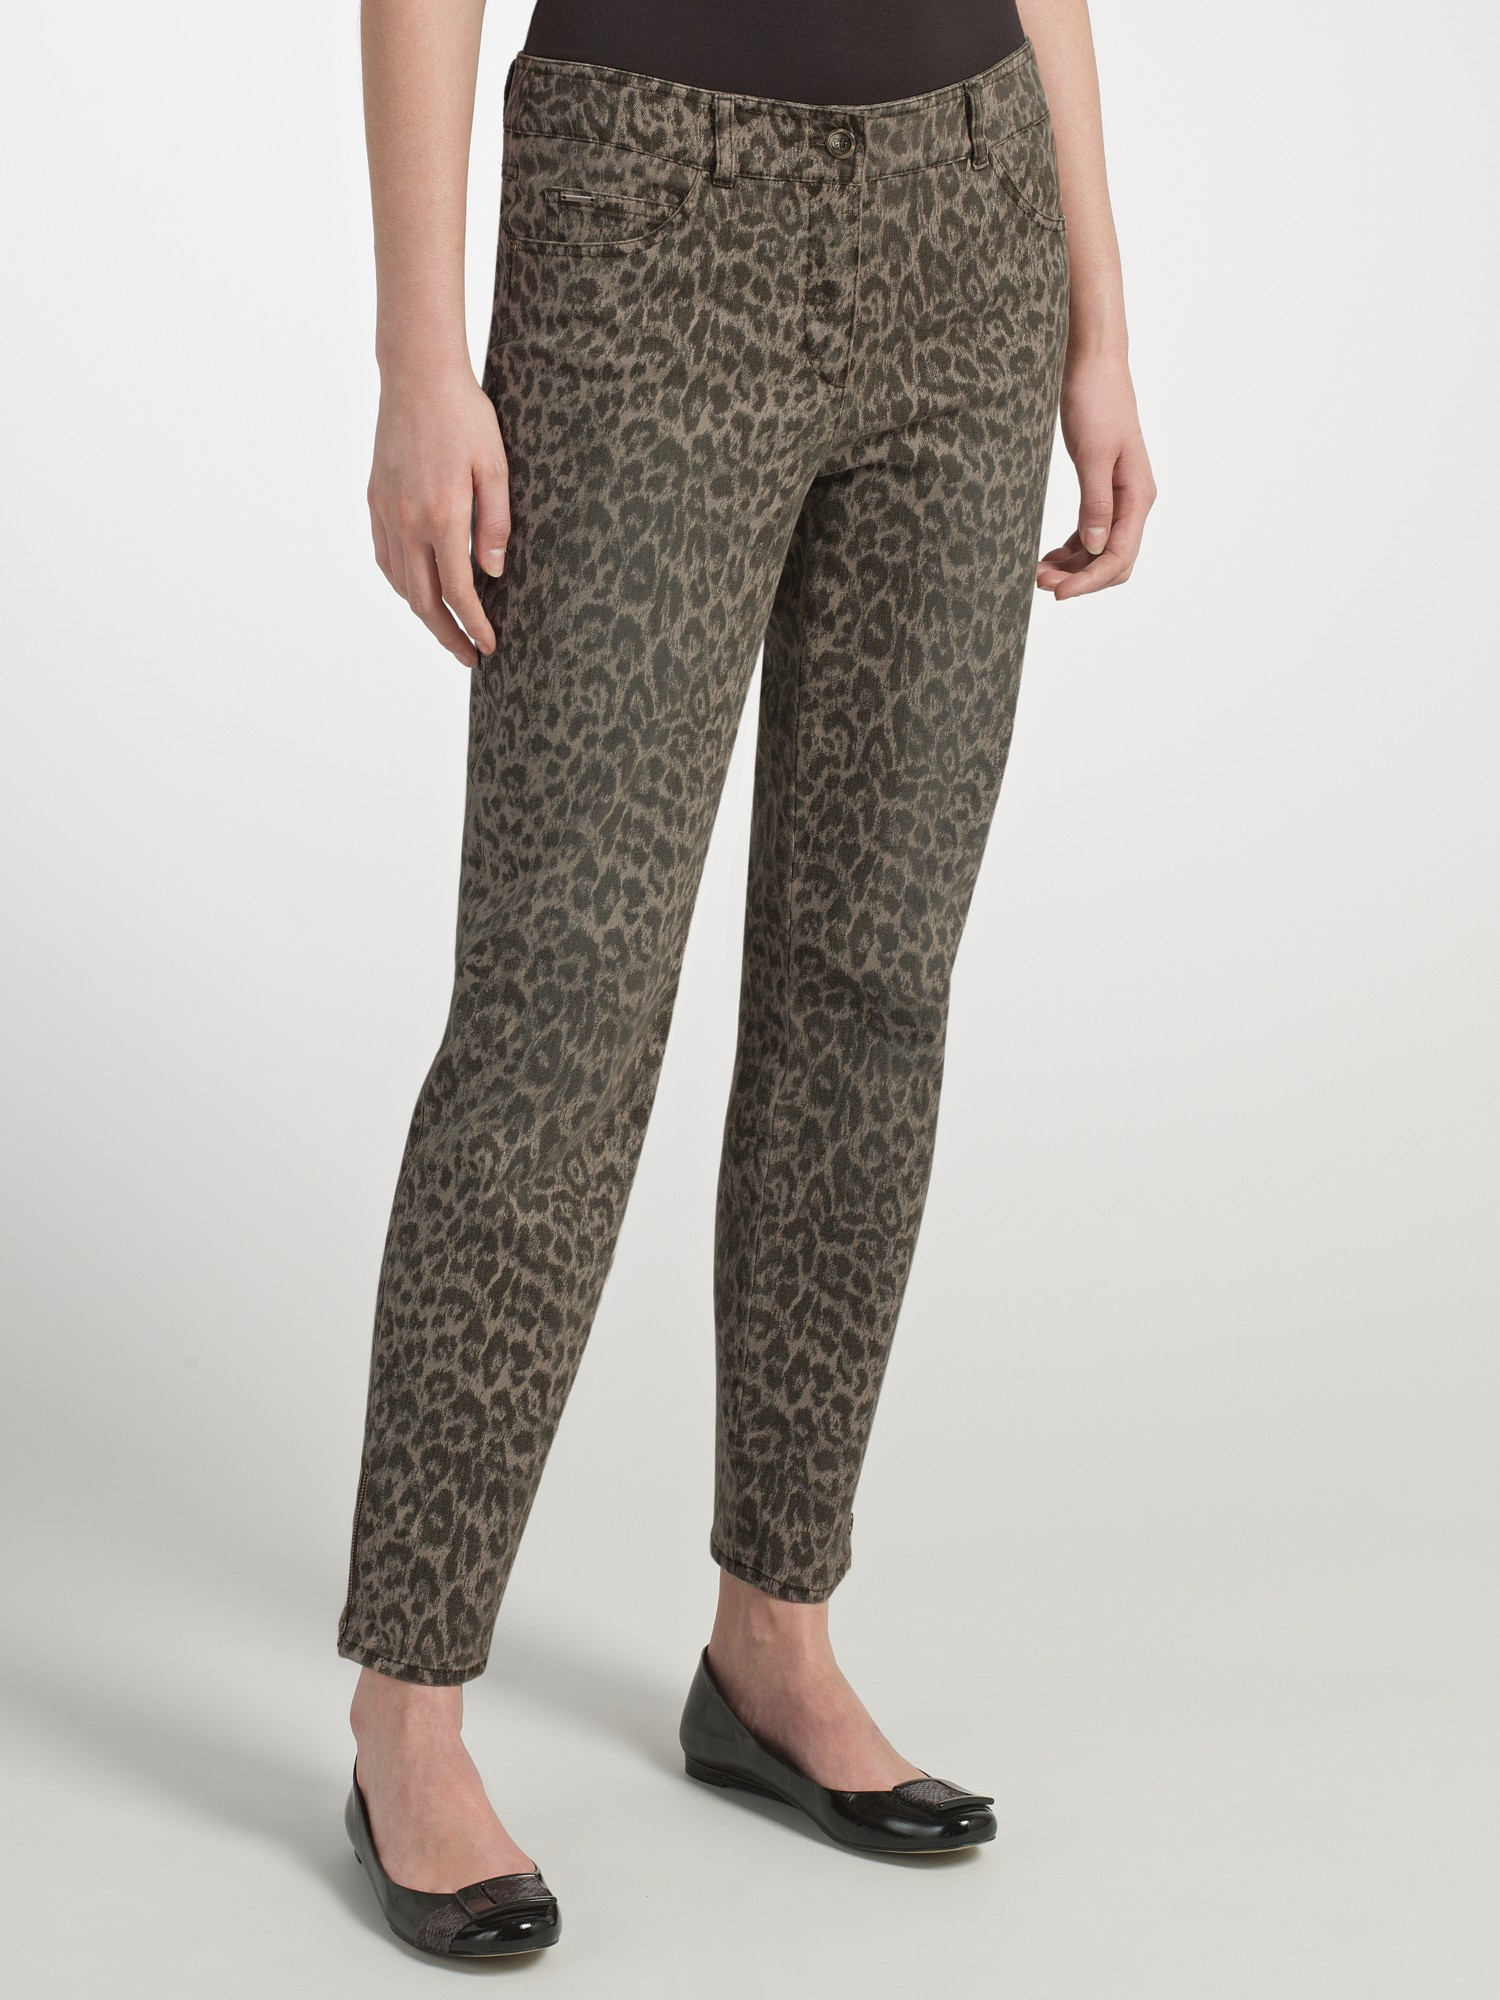 Gerry Weber Animal Print 7/8 Jeans